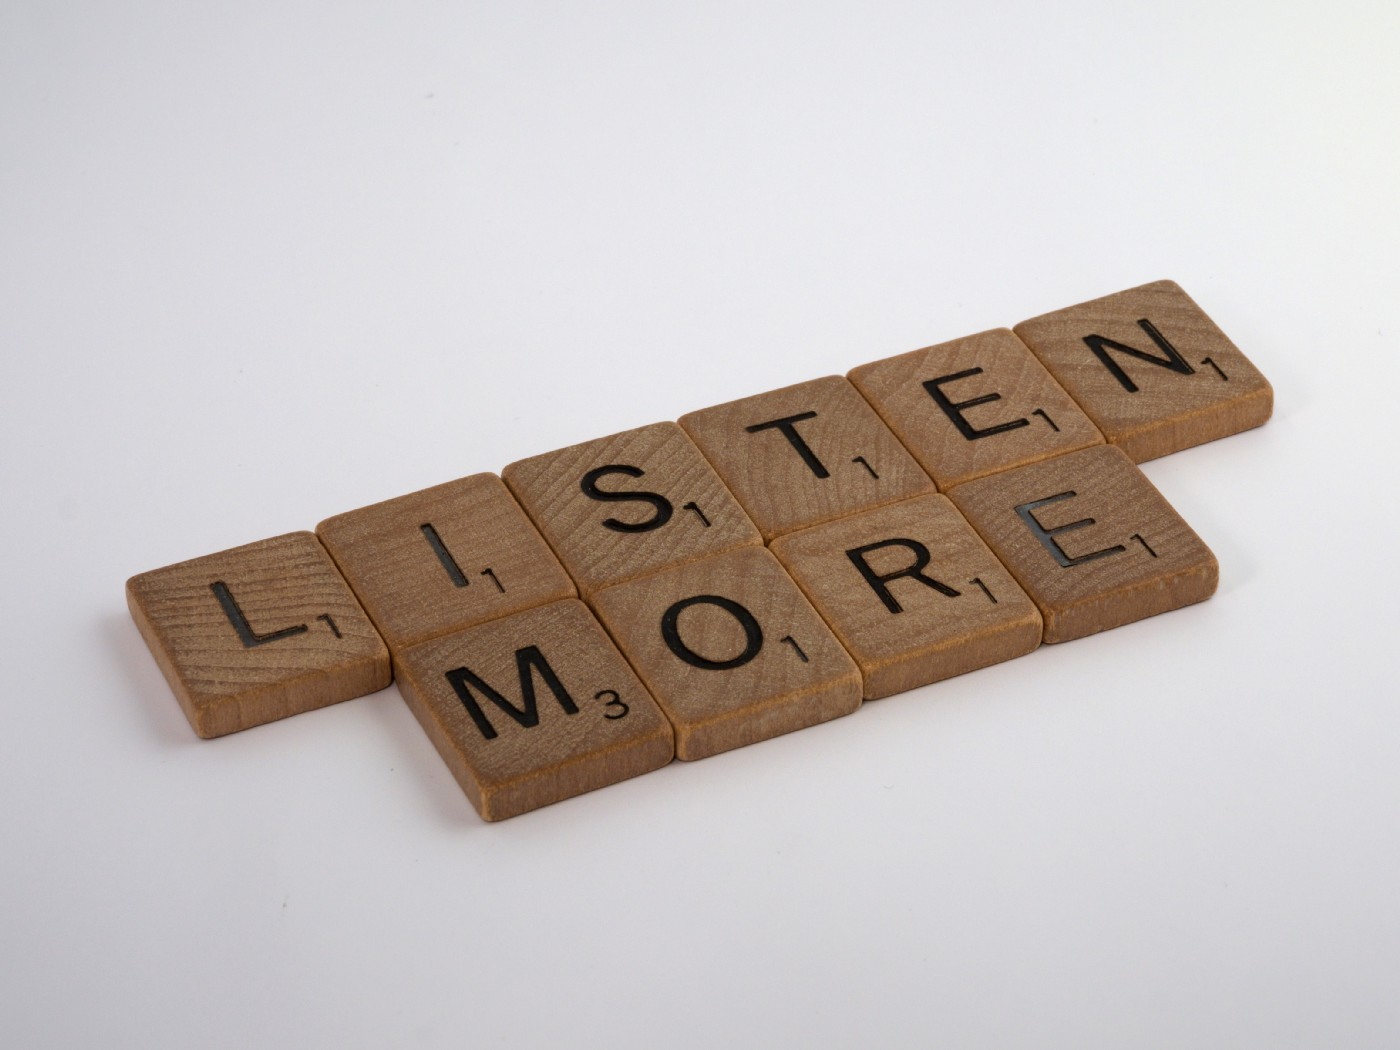 Picture with scrabble blocks saying 'Listen More'